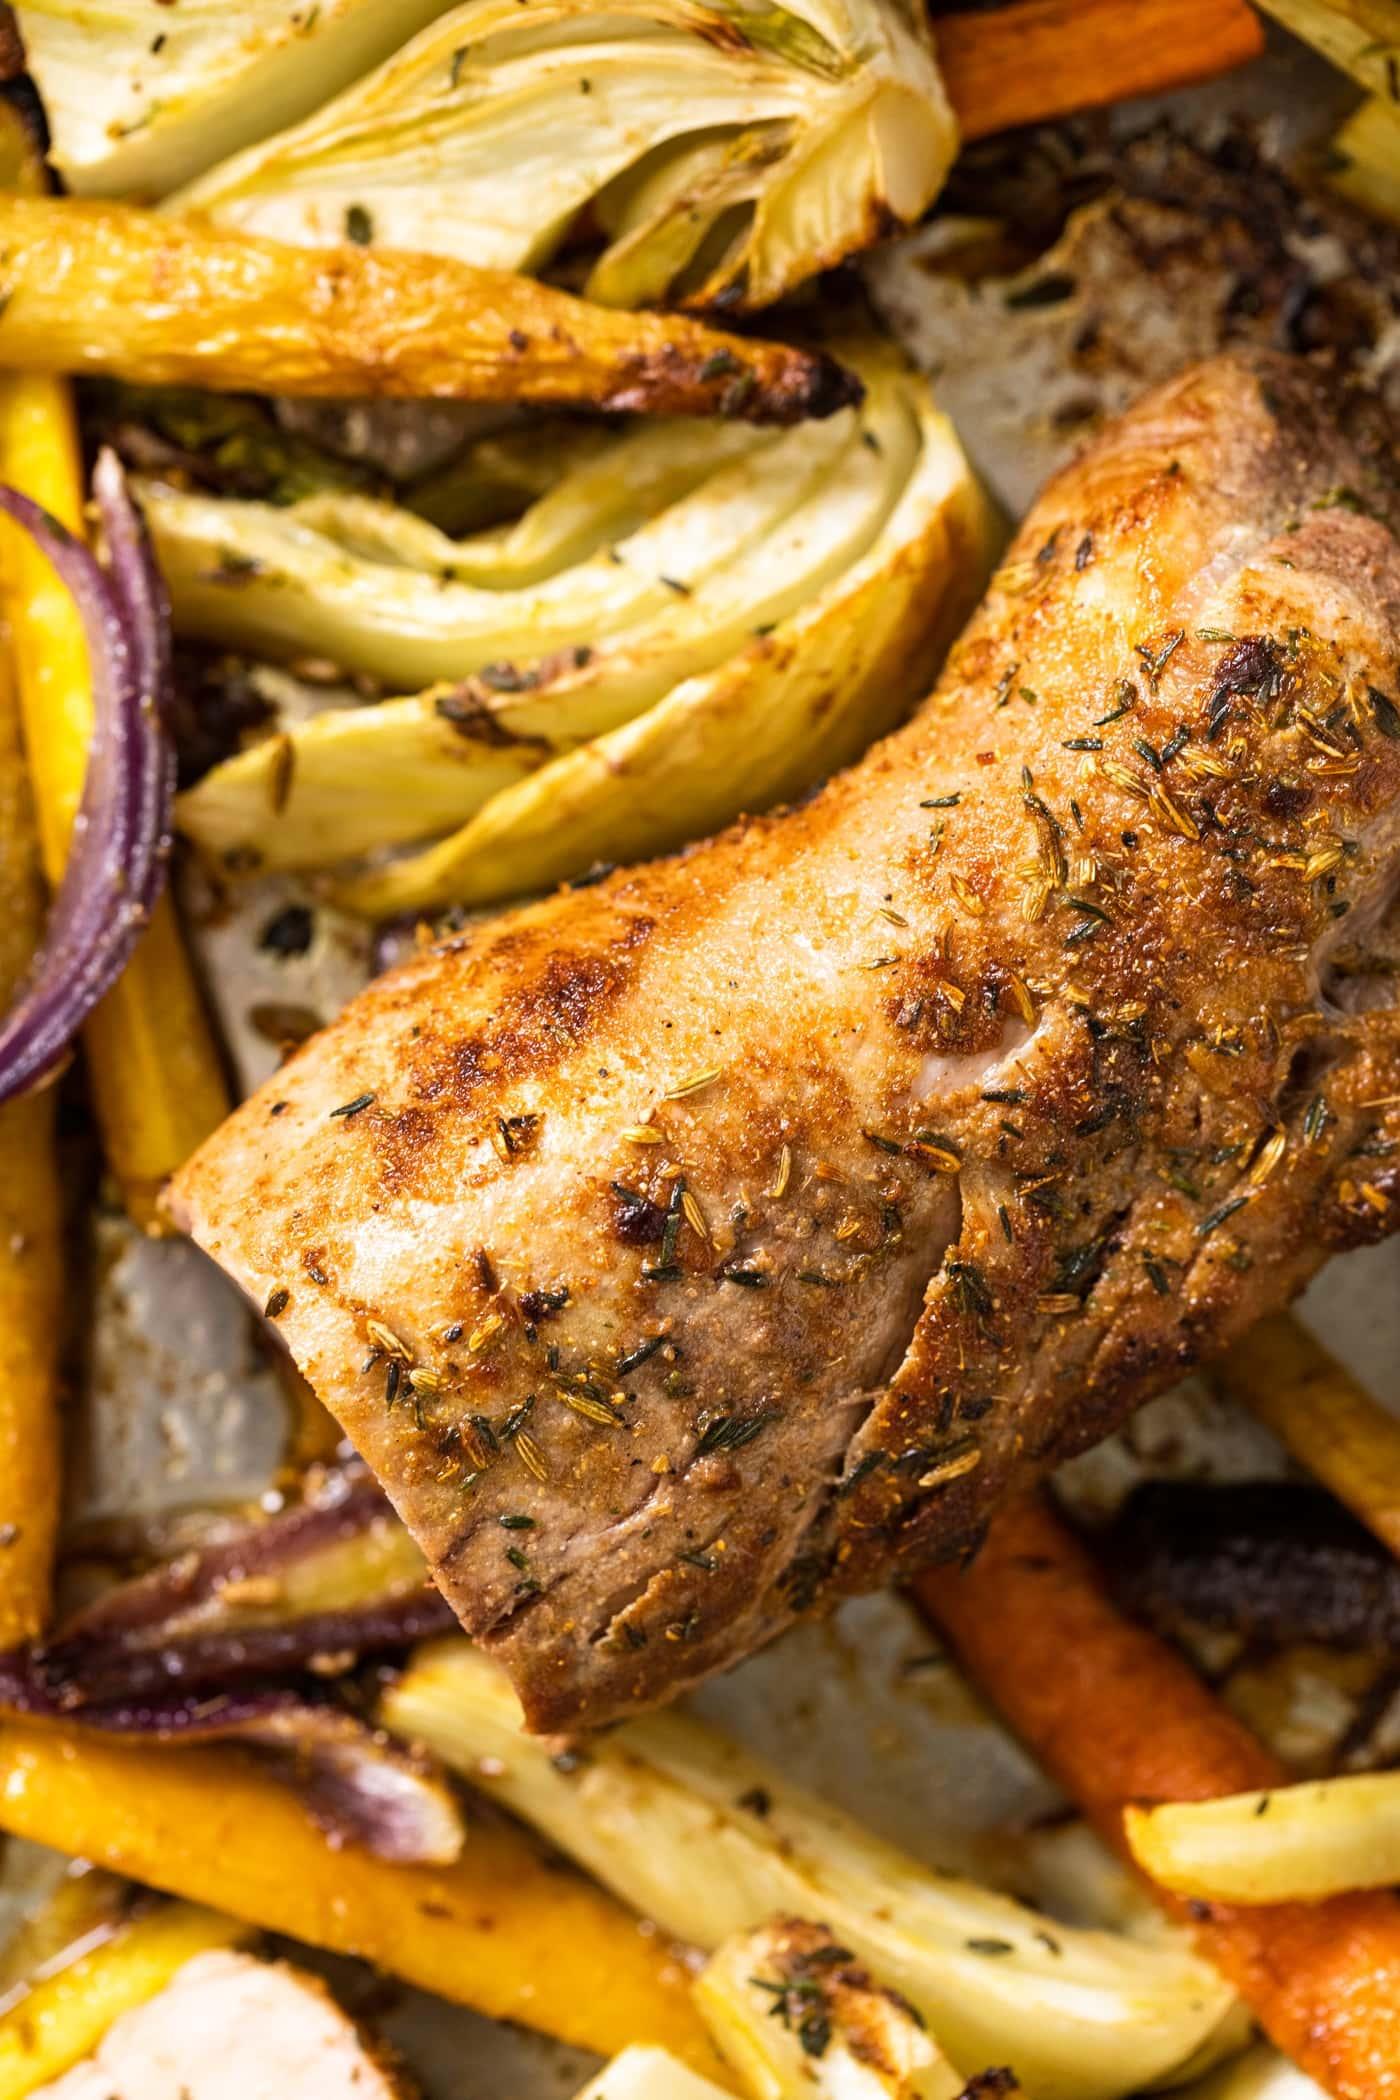 Top down view of seared pork tenderloin with golden brown crust surrounded by pieces of carrot and fennel